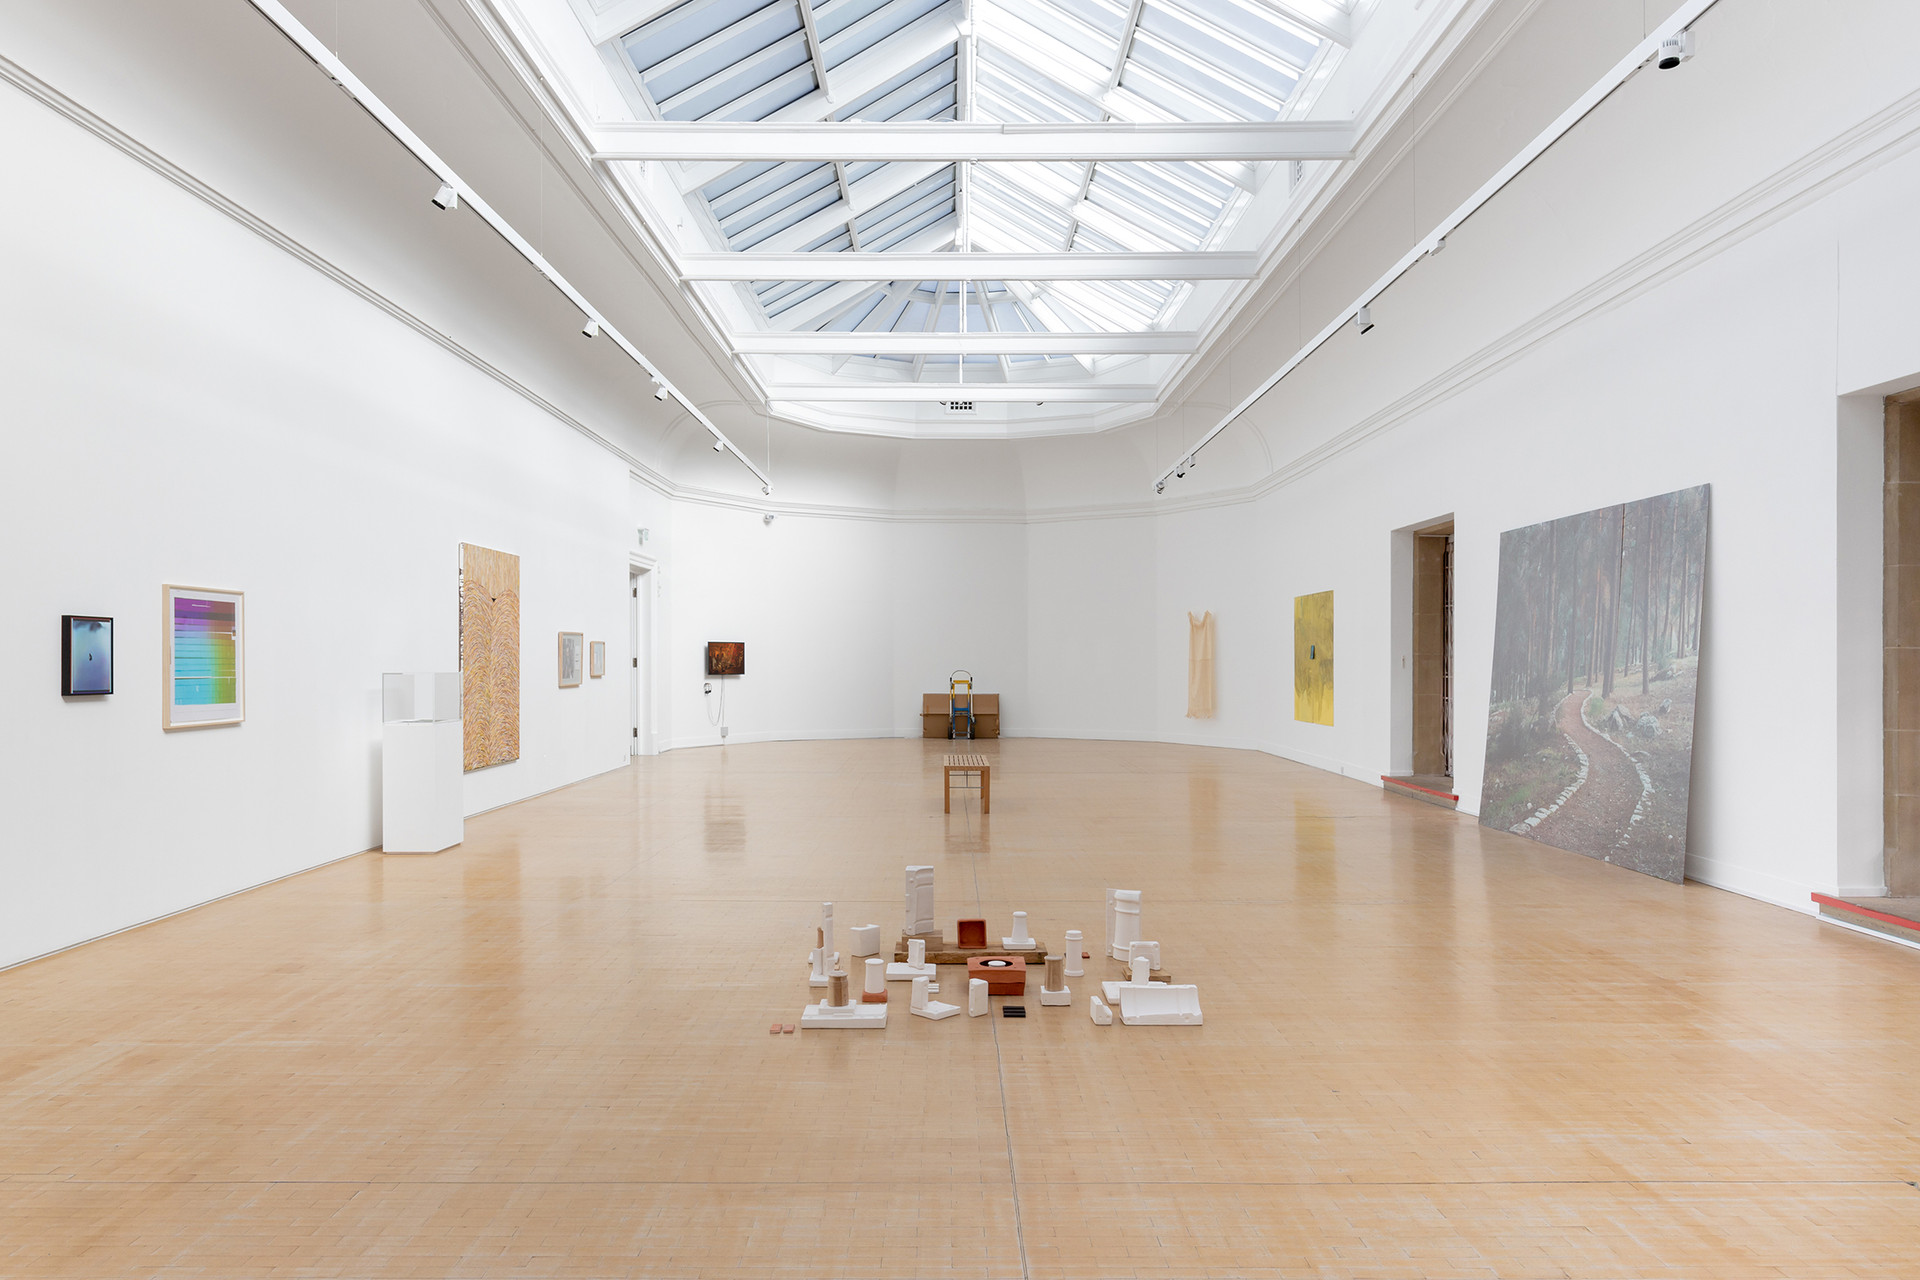 Bloomberg New Contemporaries 2019, Leeds Art Gallery, Courtesy @newcontemps Installation Photography by Jules Lister.